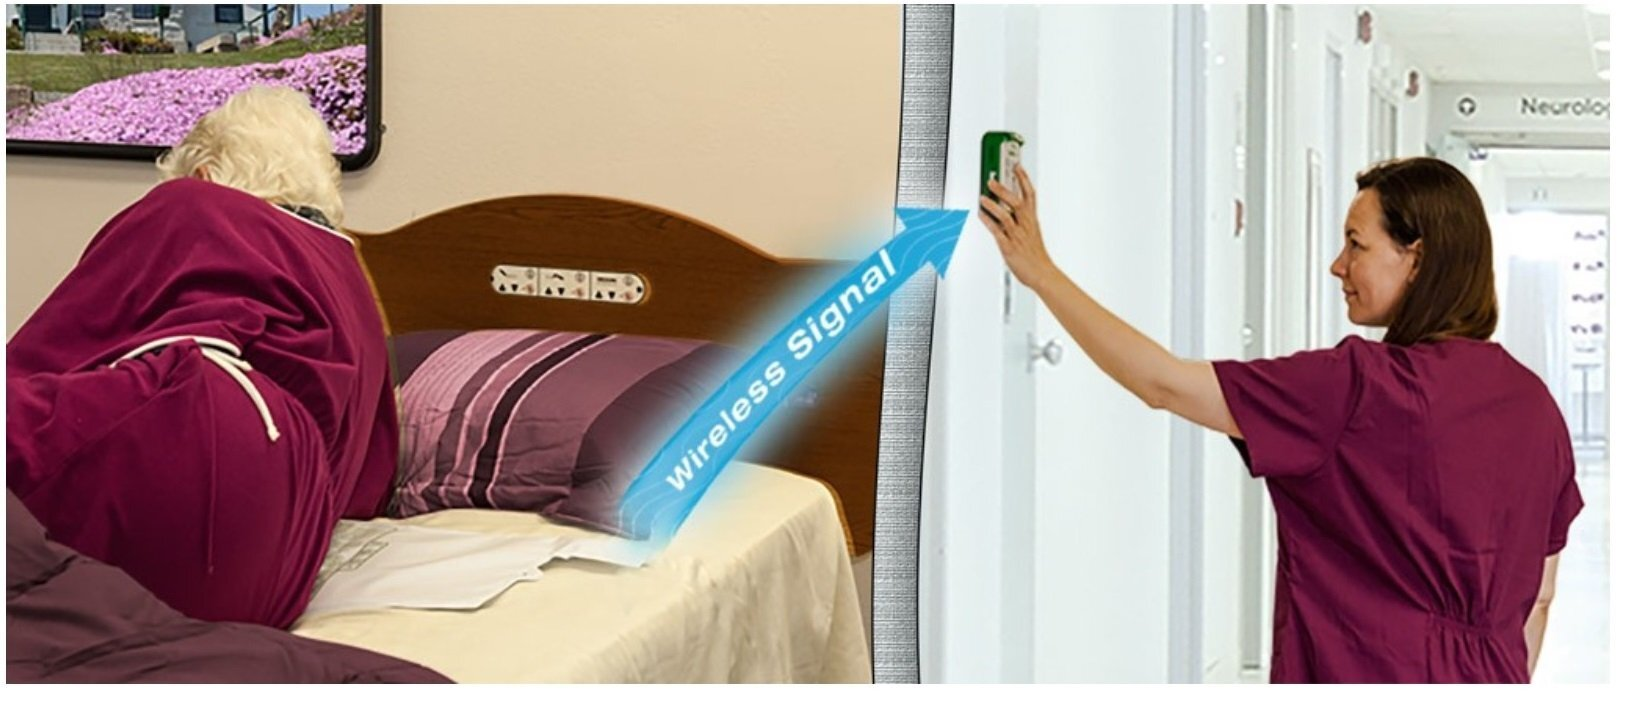 Cordfree Alarm for Wireless Bed & Chair Pads